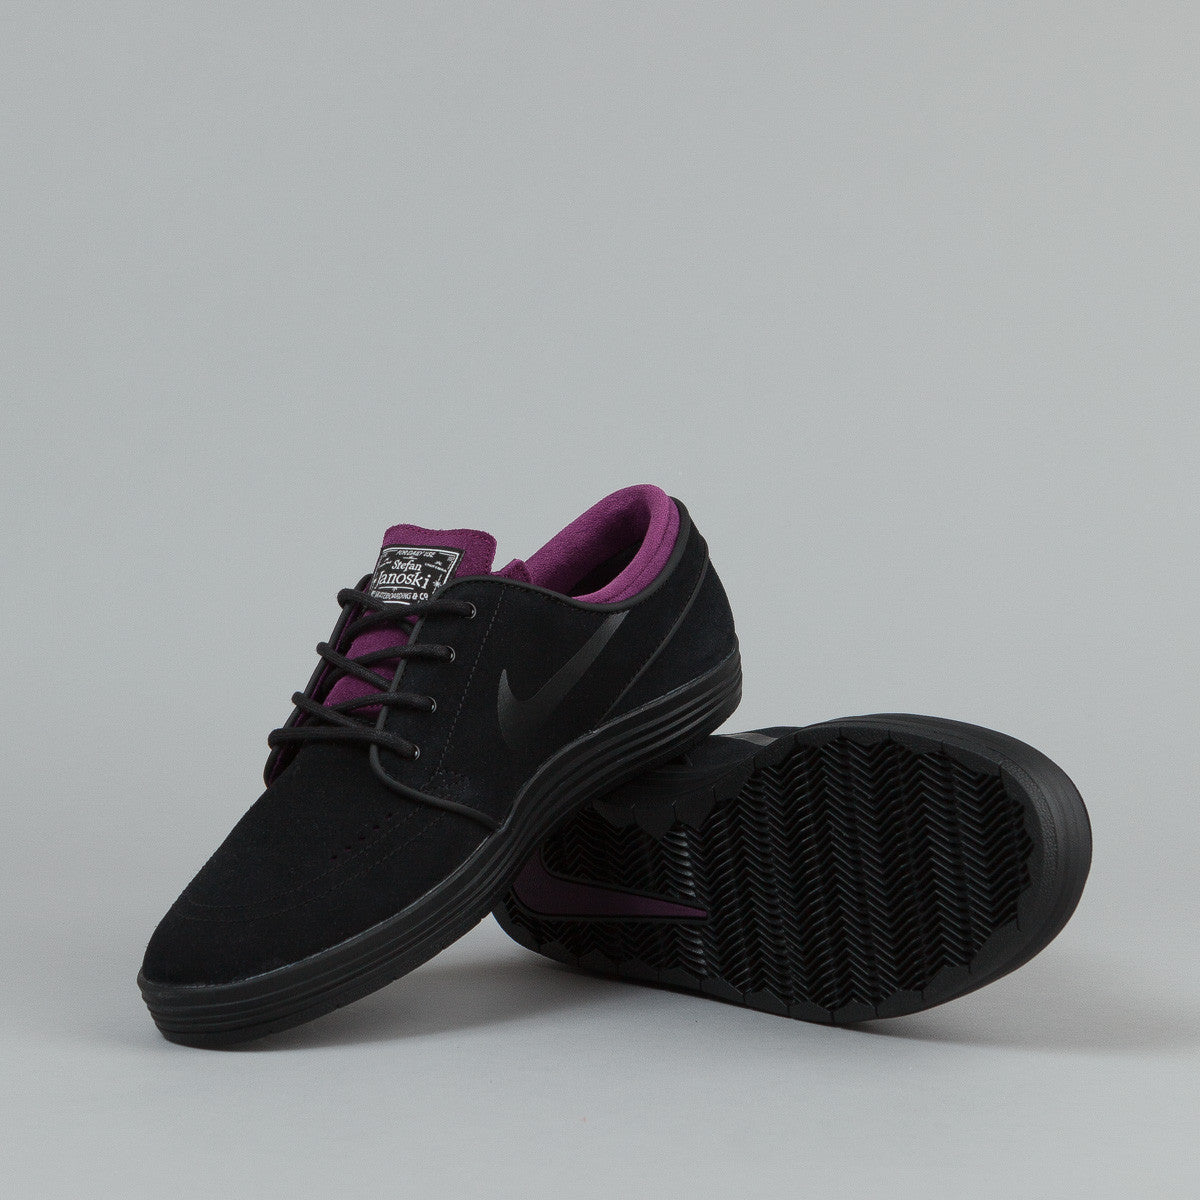 Nike SB Lunar Stefan Janoski Shoes - Black / Black - Mulberry